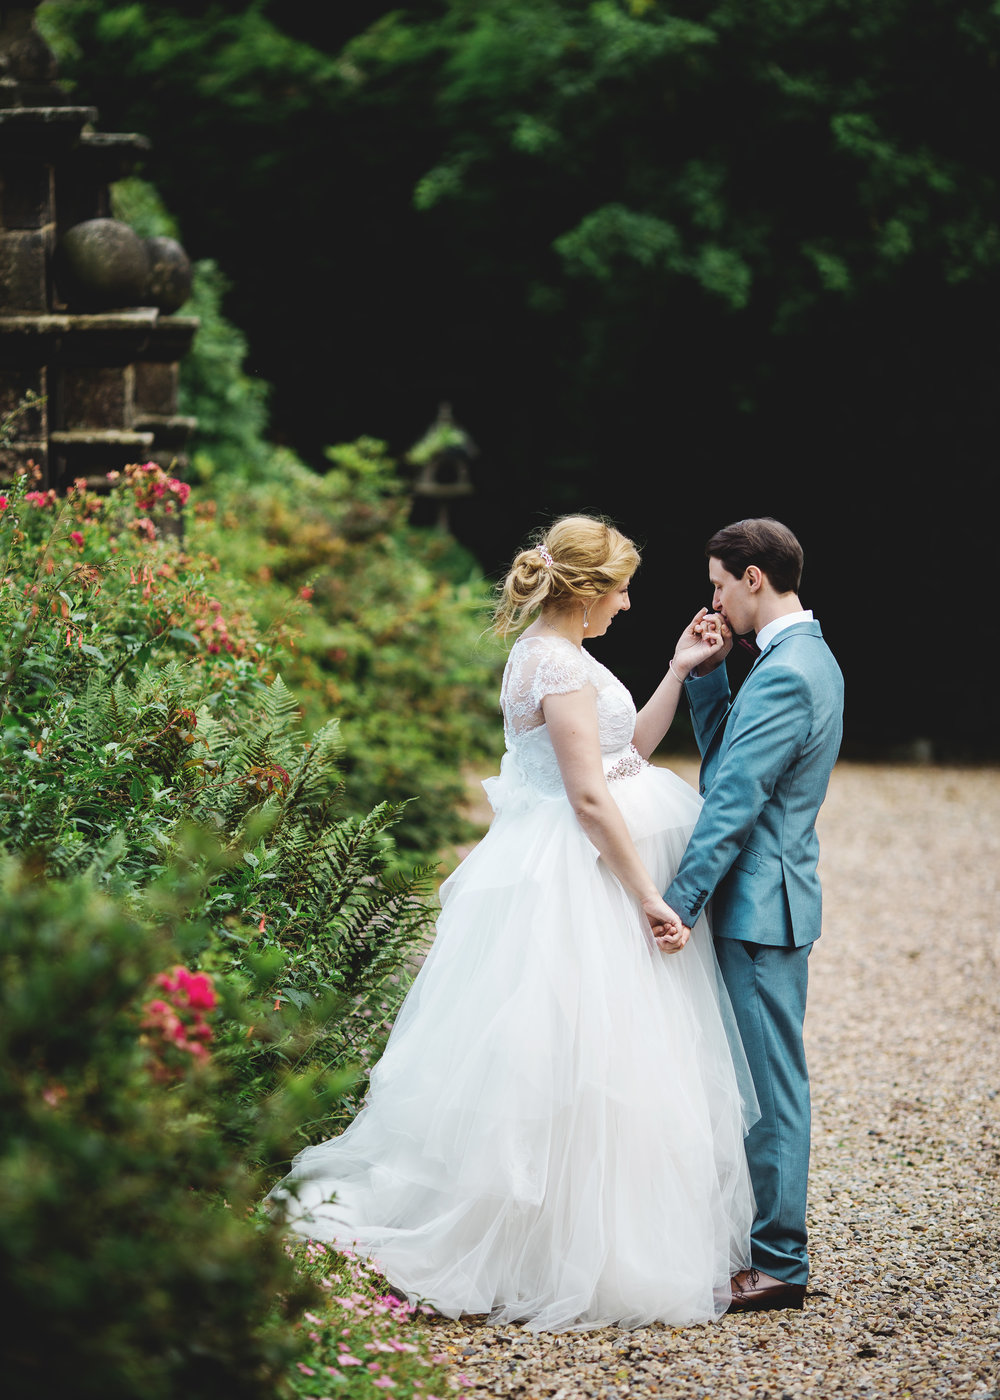 the bride and groom portrait on the pathway at Houldsworth House- Creative wedding photography